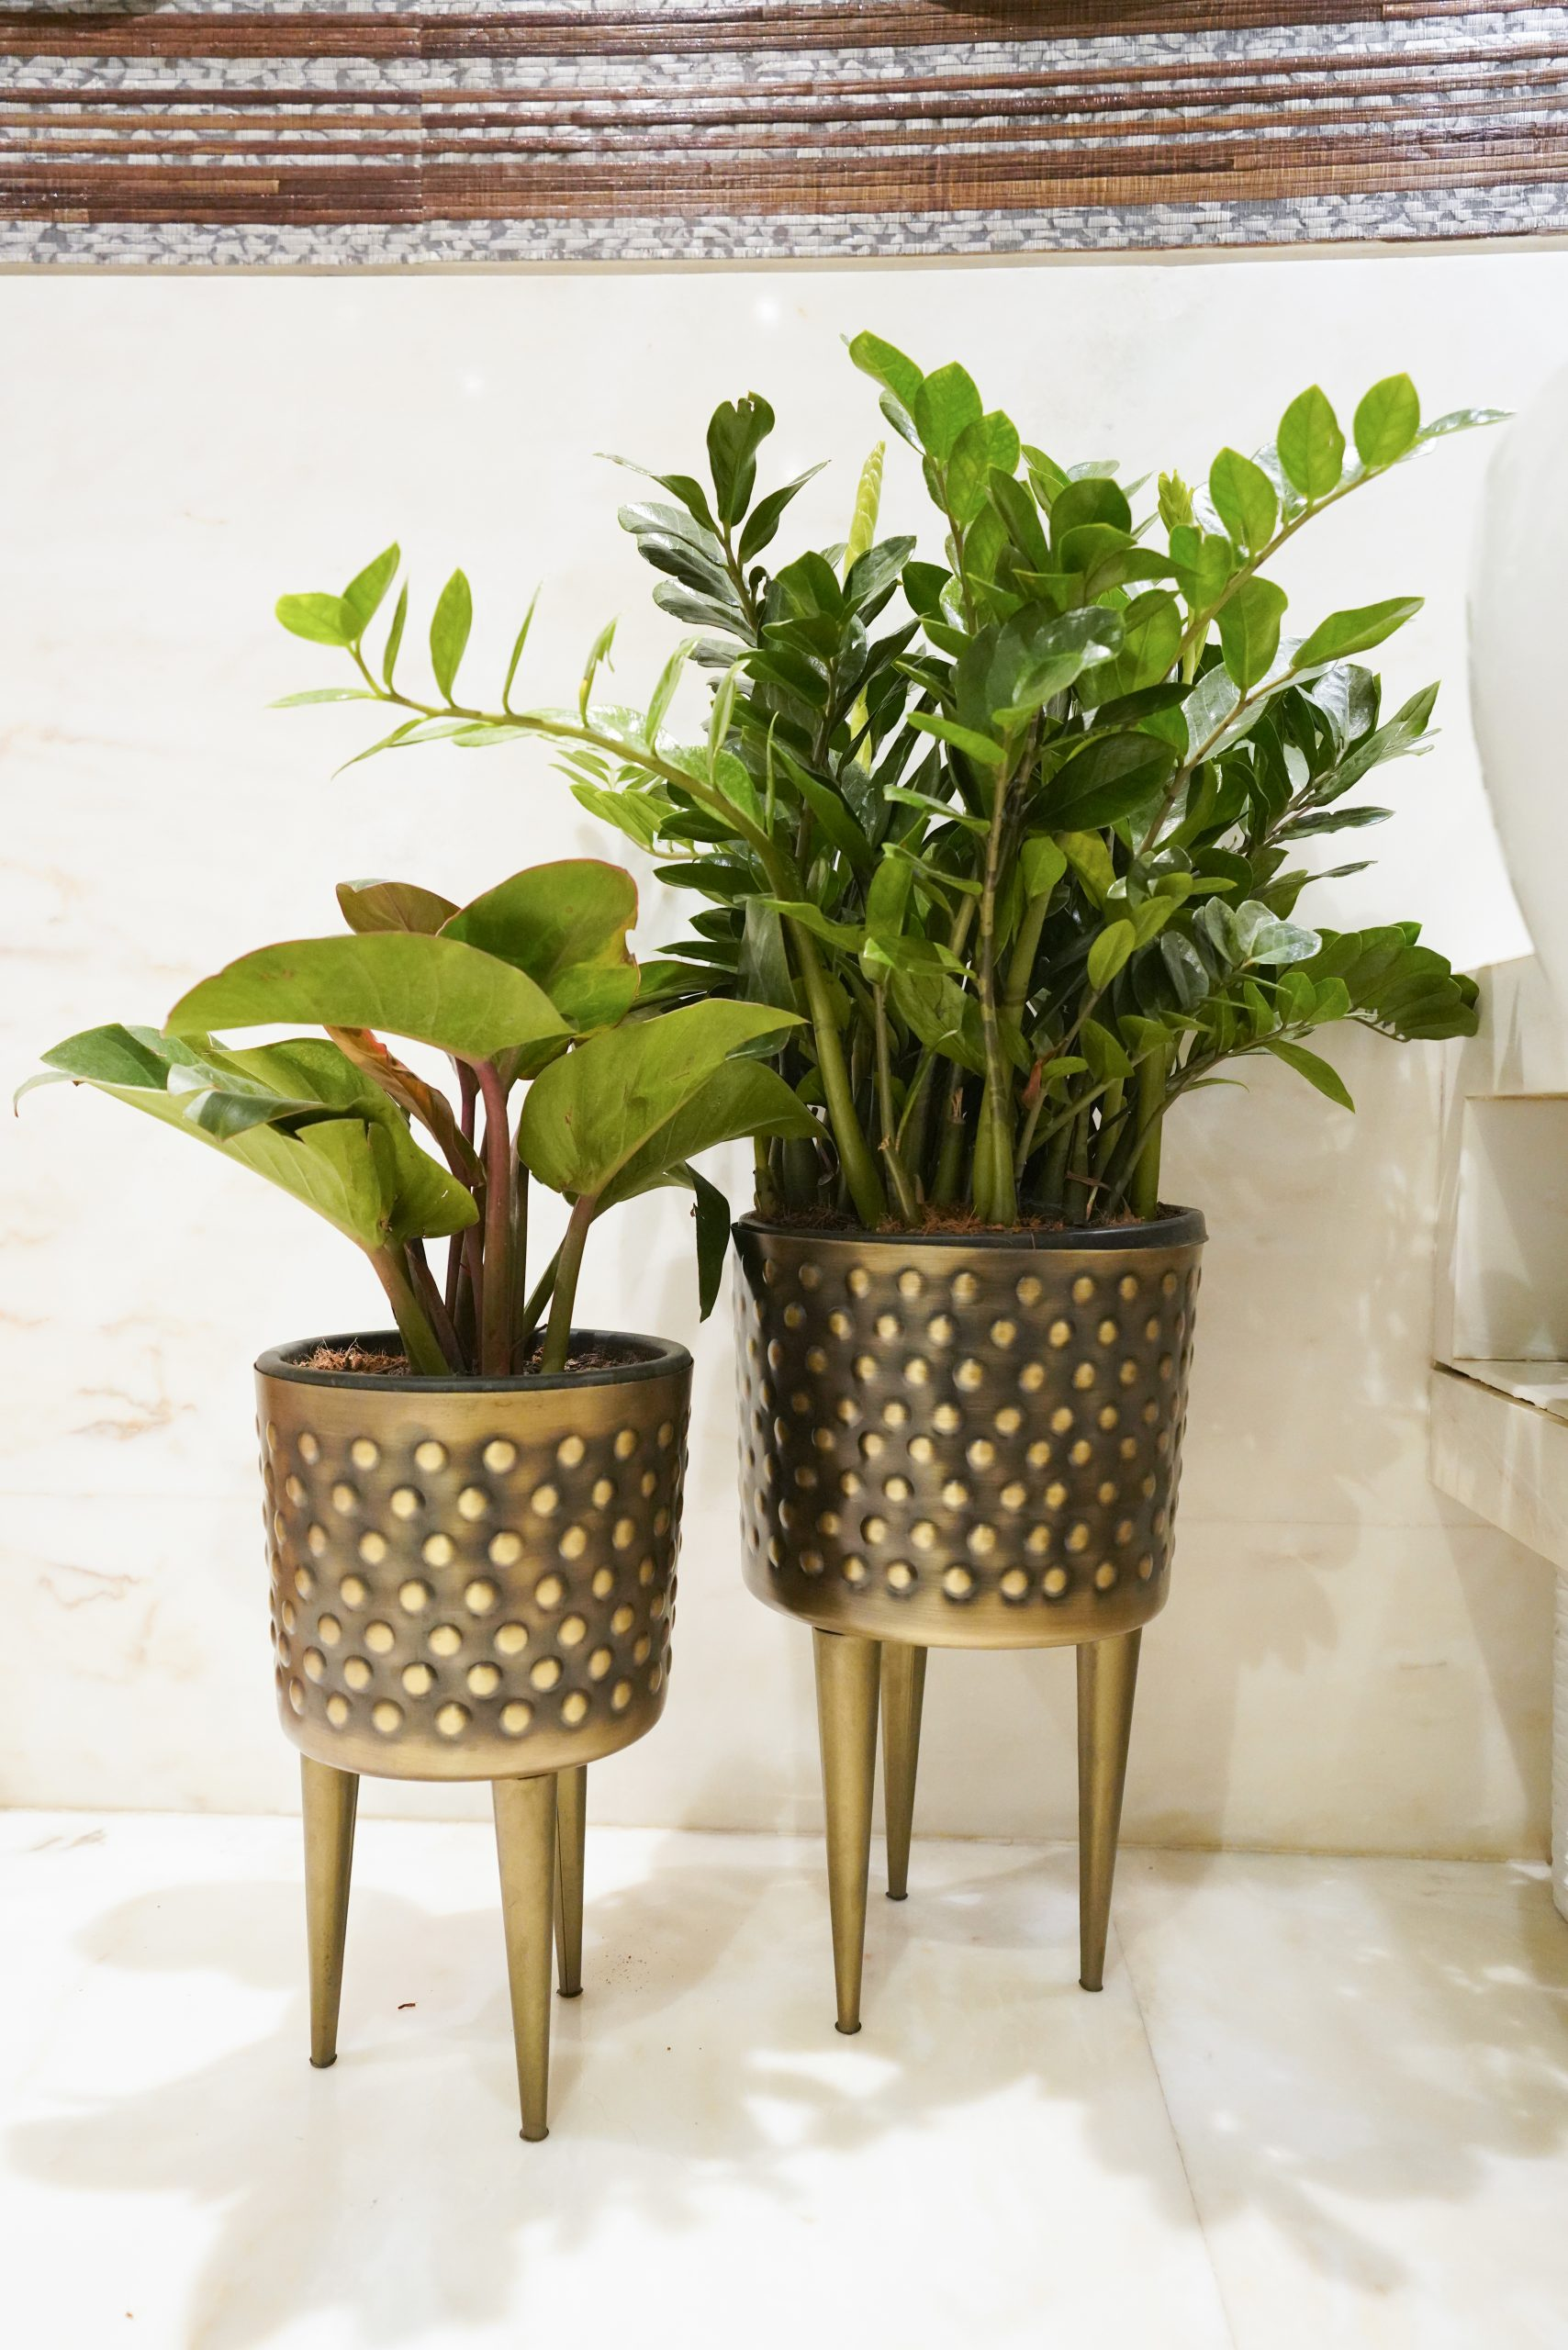 Plant pots on the stool